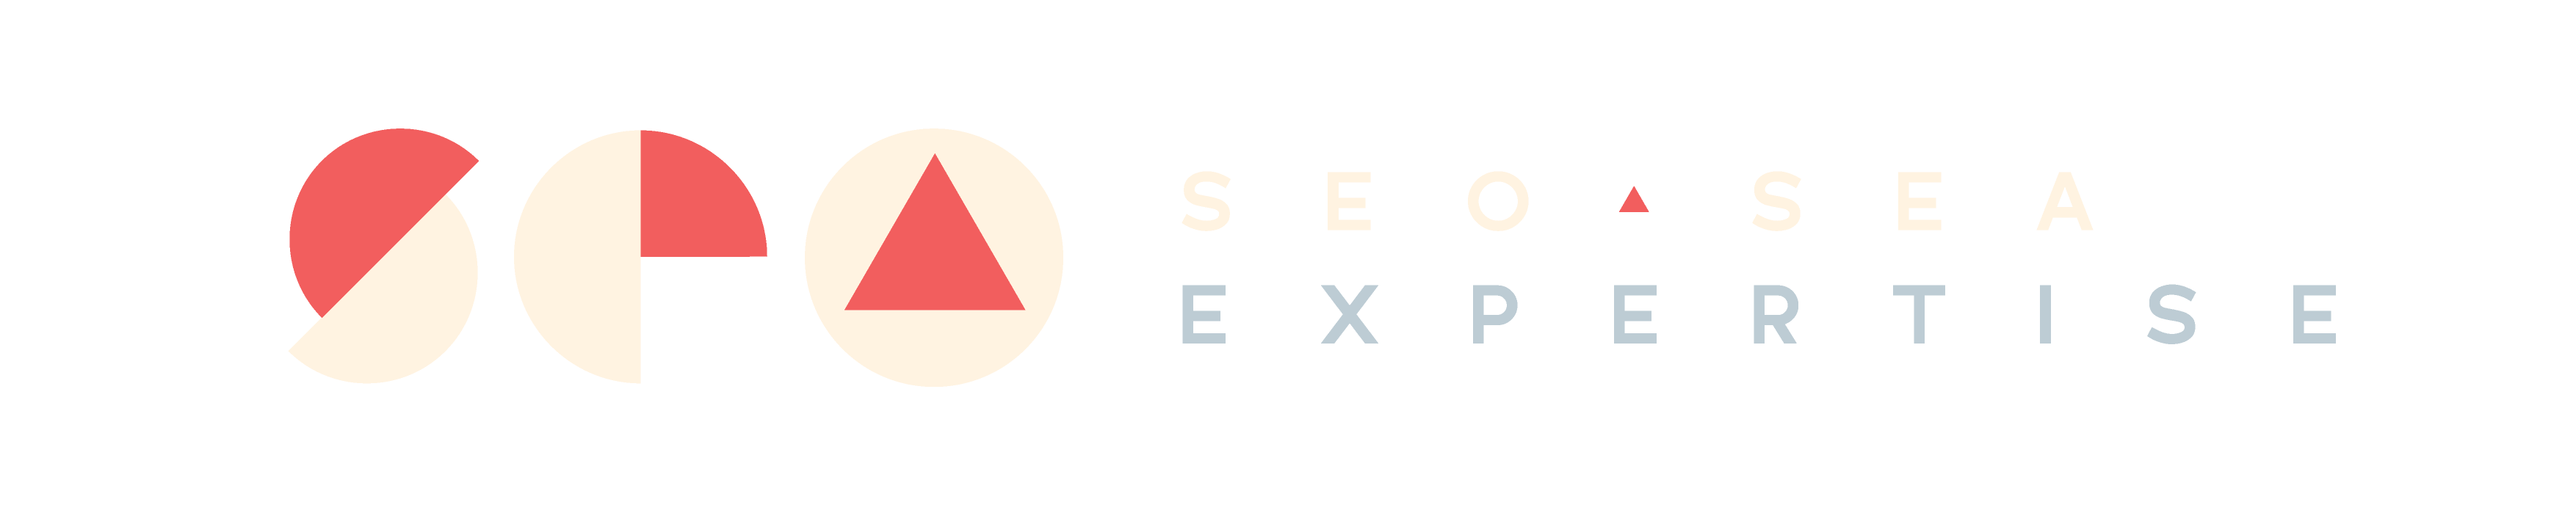 SEO SEA Expertise